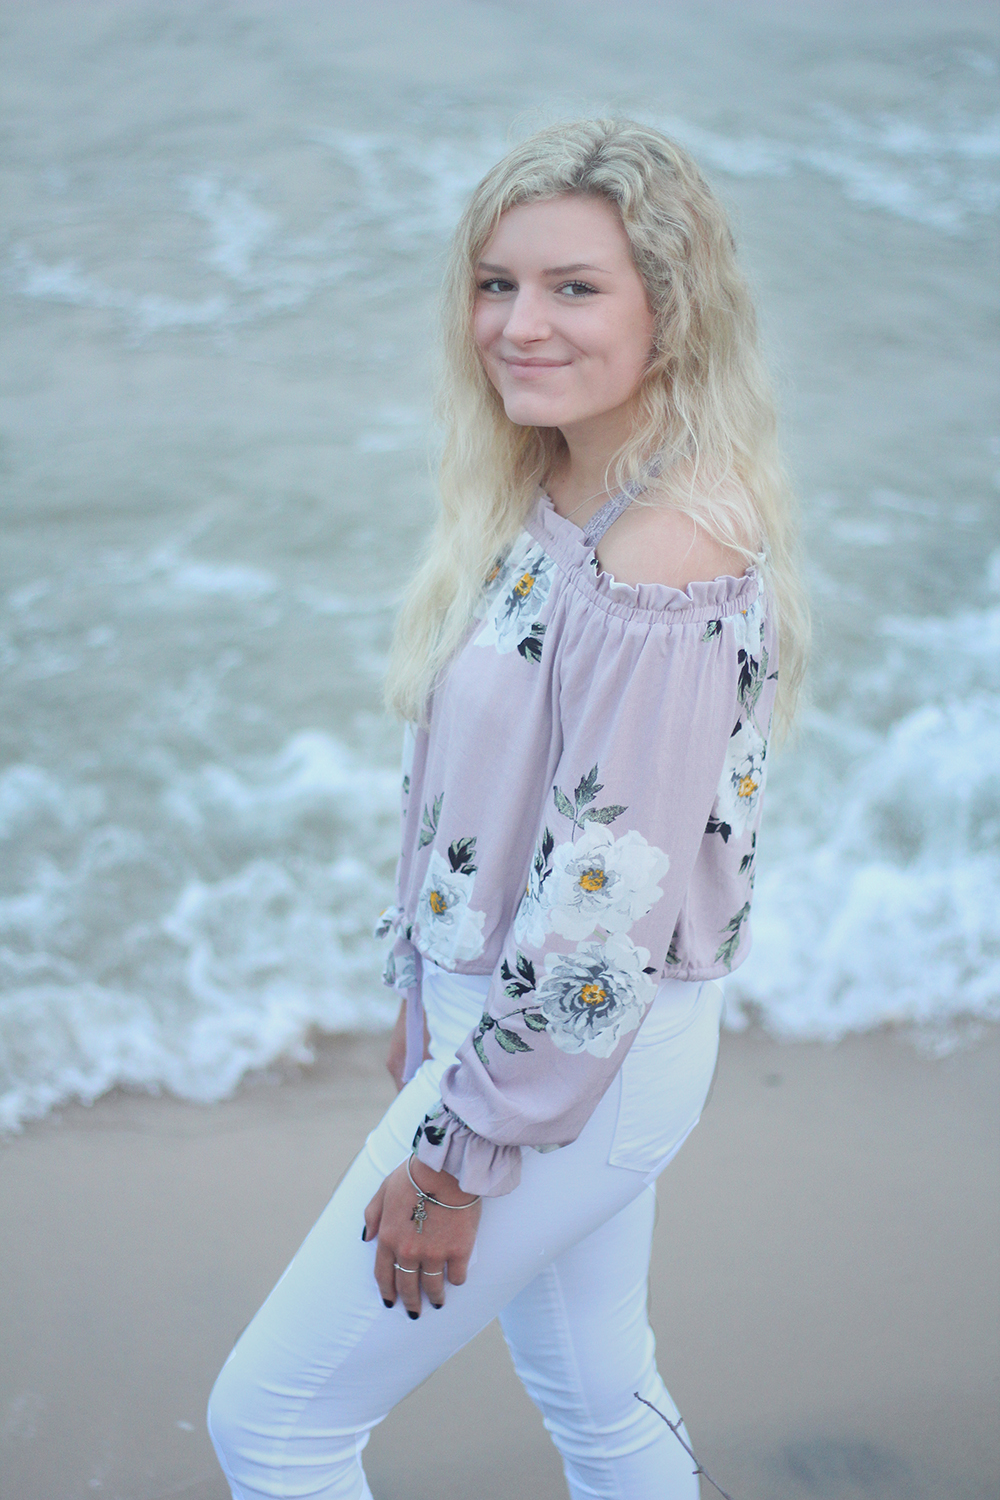 Samantha Jones Frankfort beach senior photos aubrey ann parker photography Lake Michigan beach